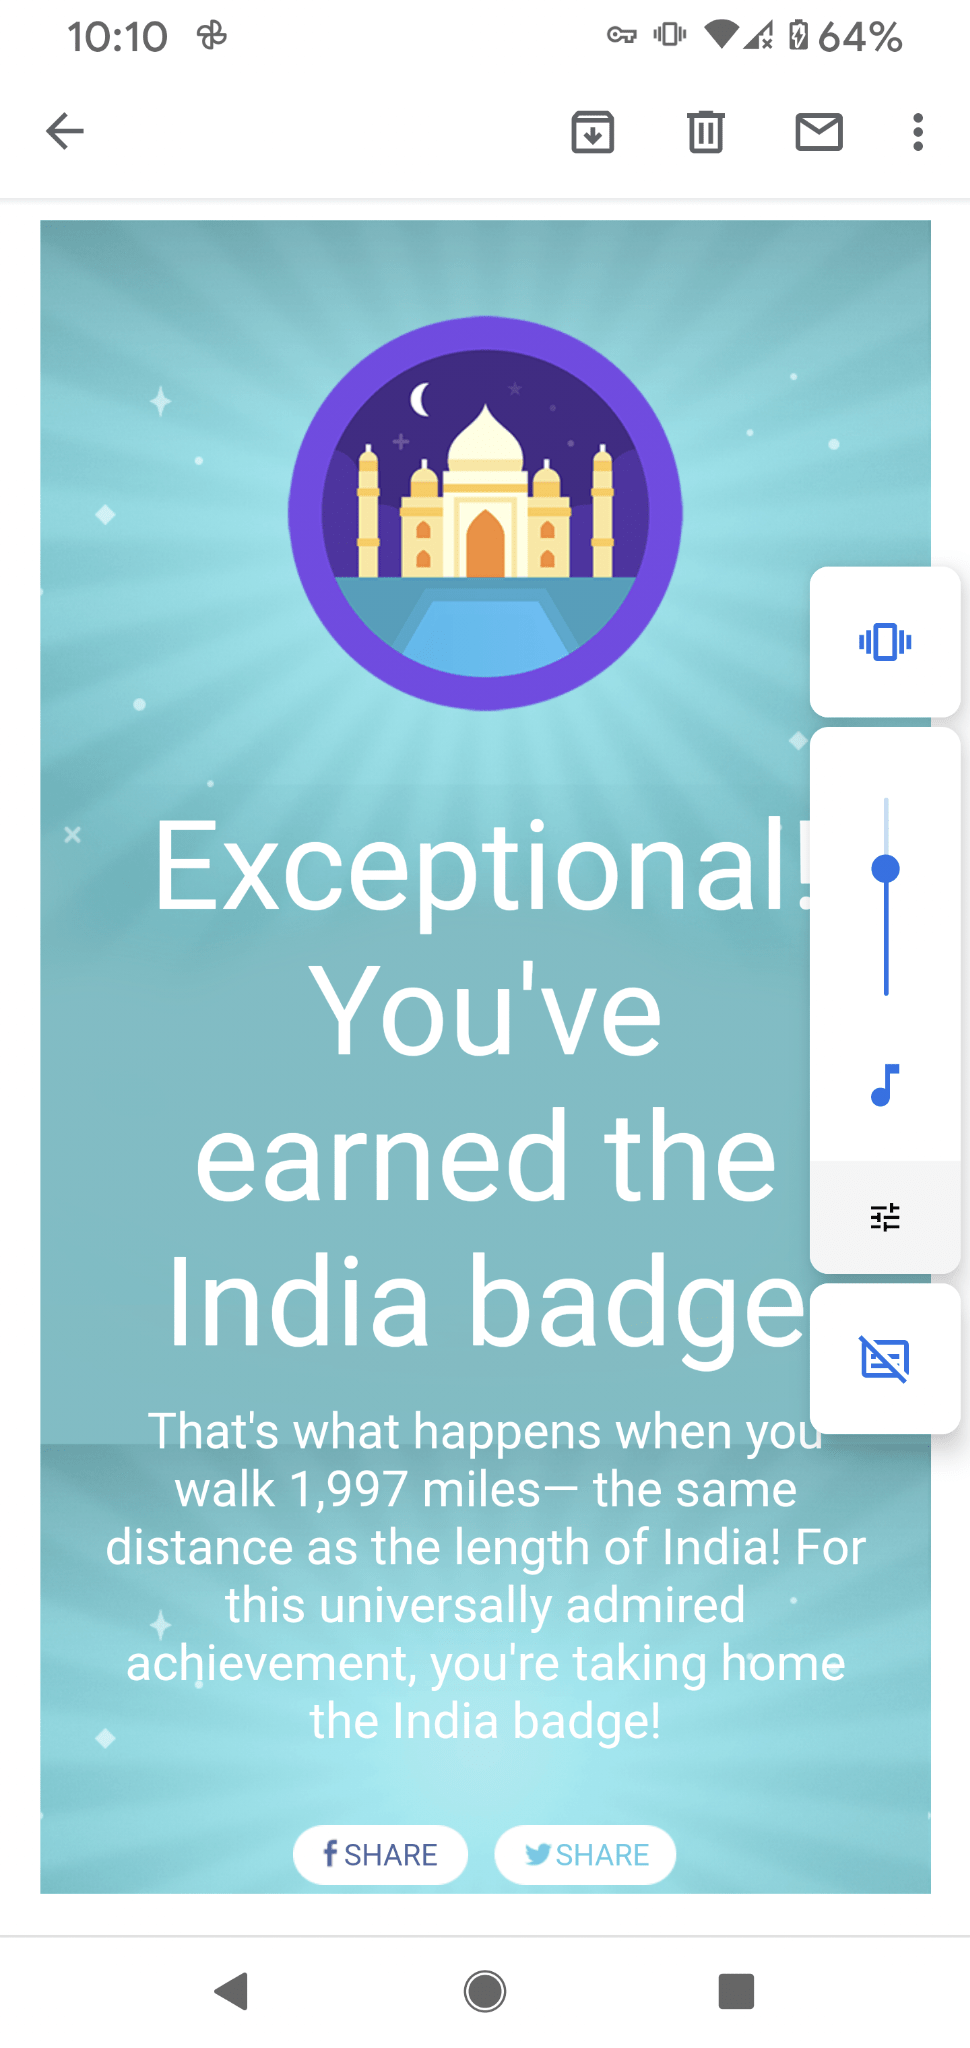 I received this message from Fitbit that I've earned my India walking badge.